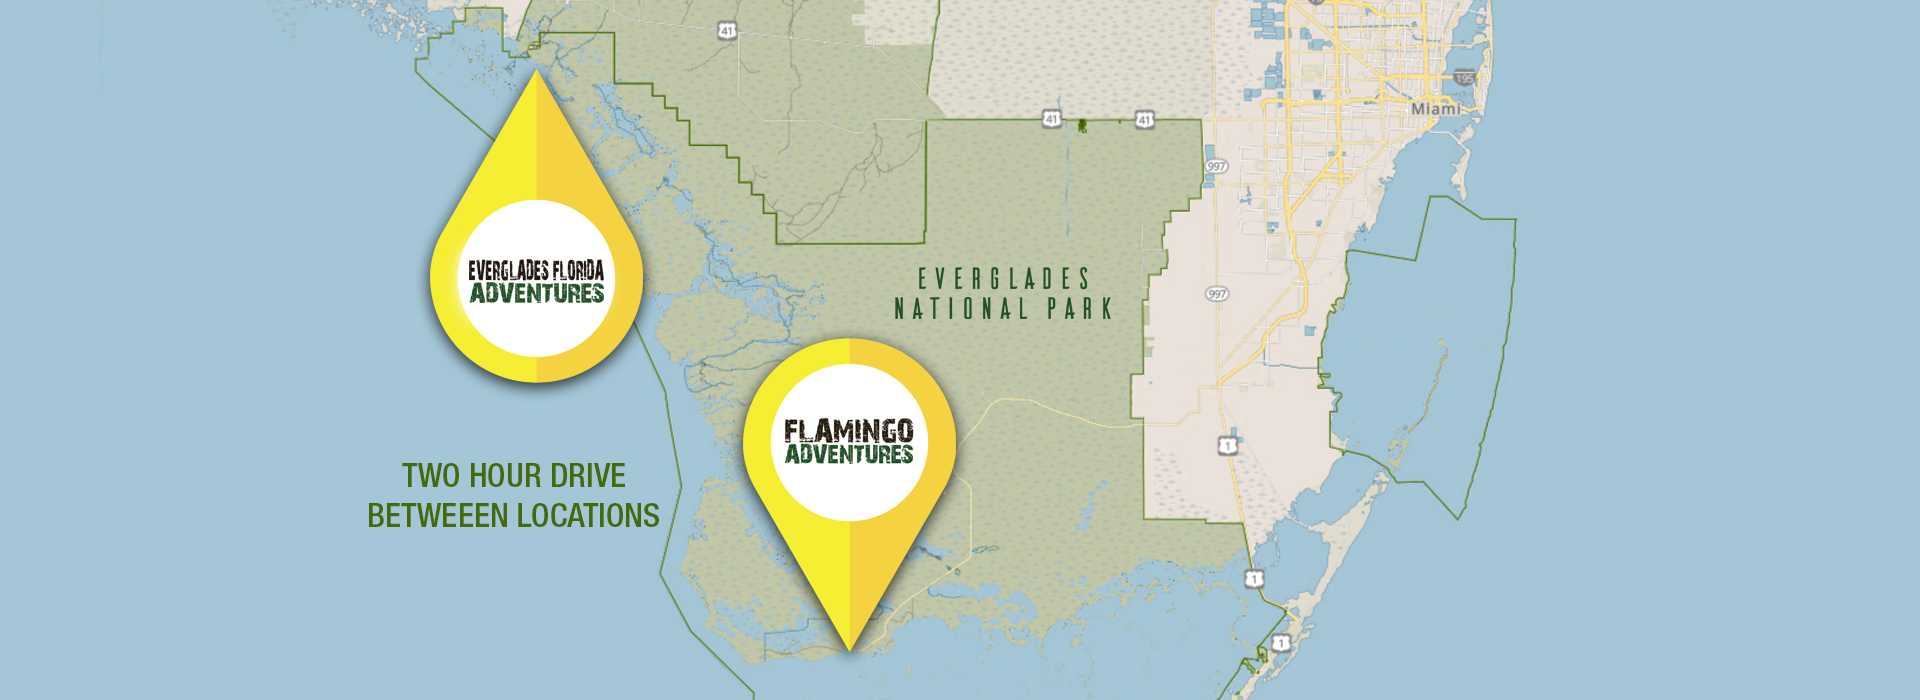 everglades map for both locations